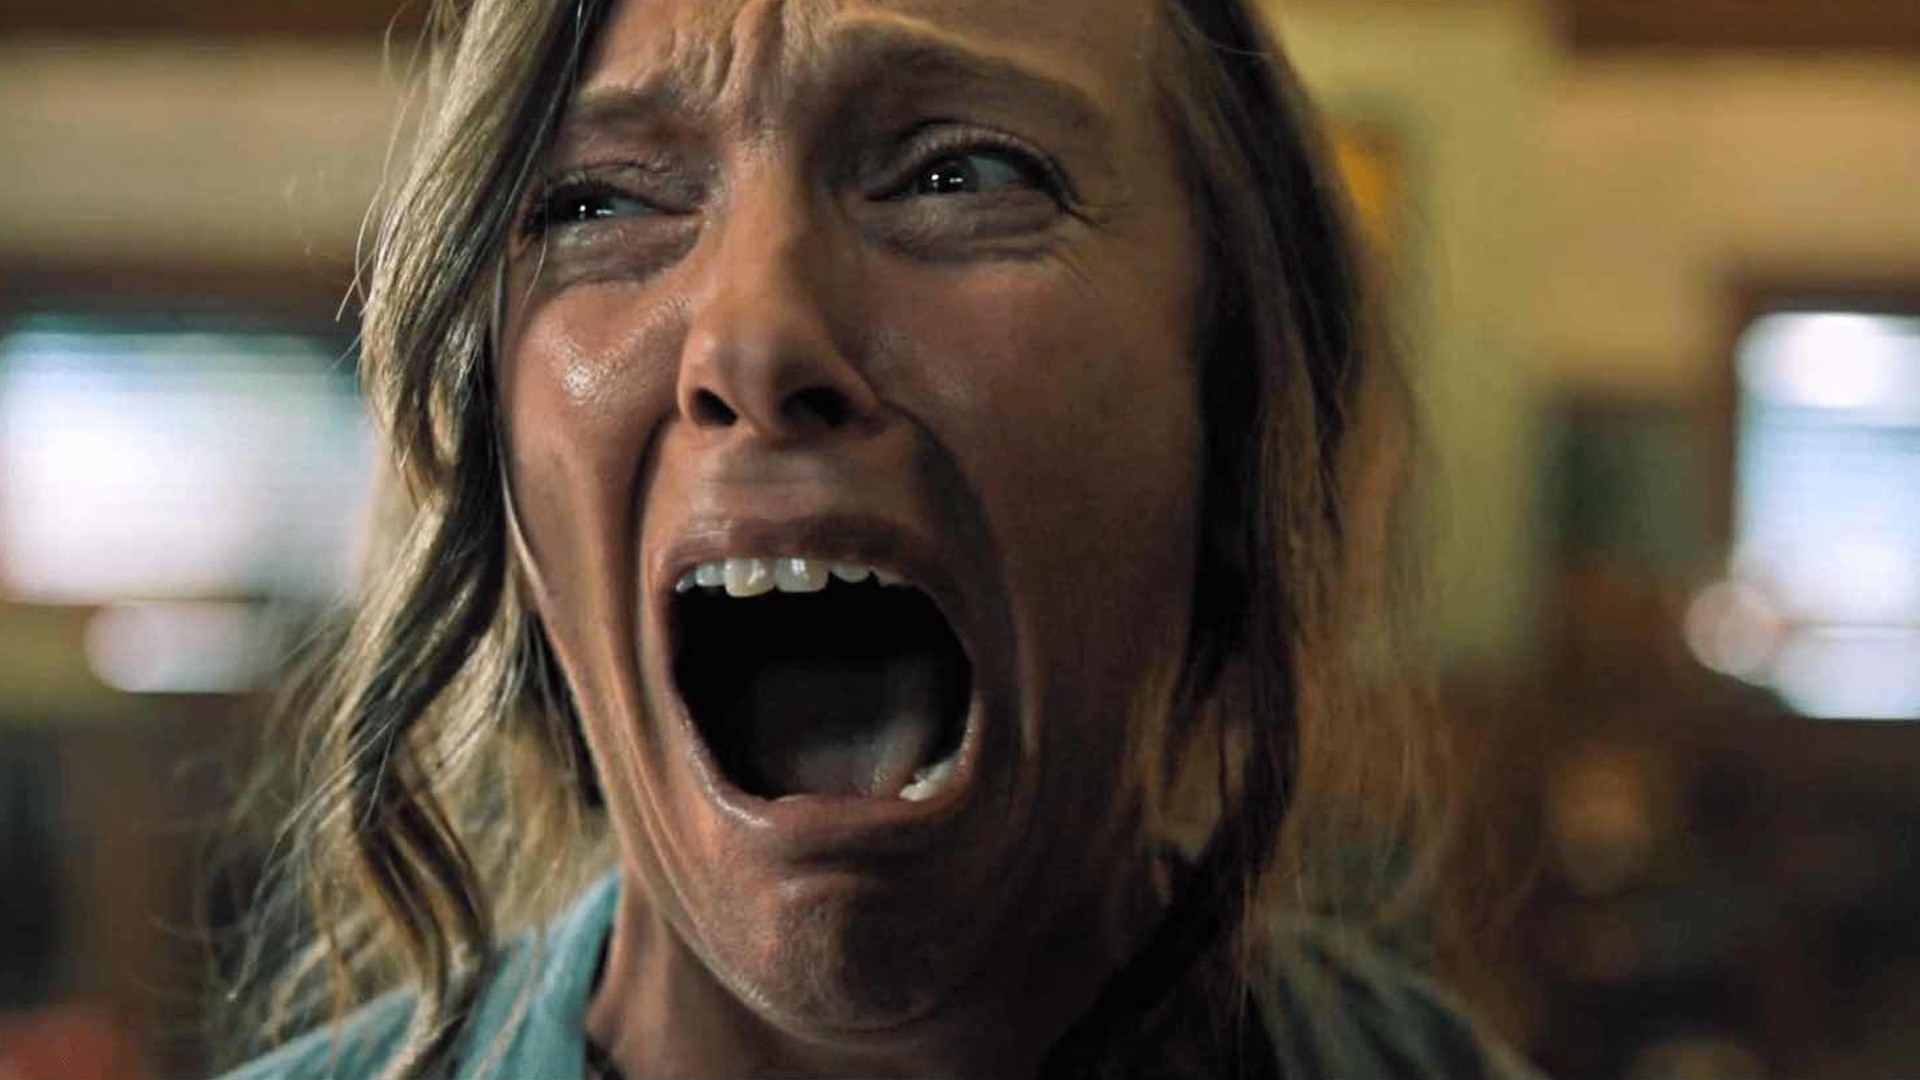 Review: Hereditary is a tense, twisty and unpredictable